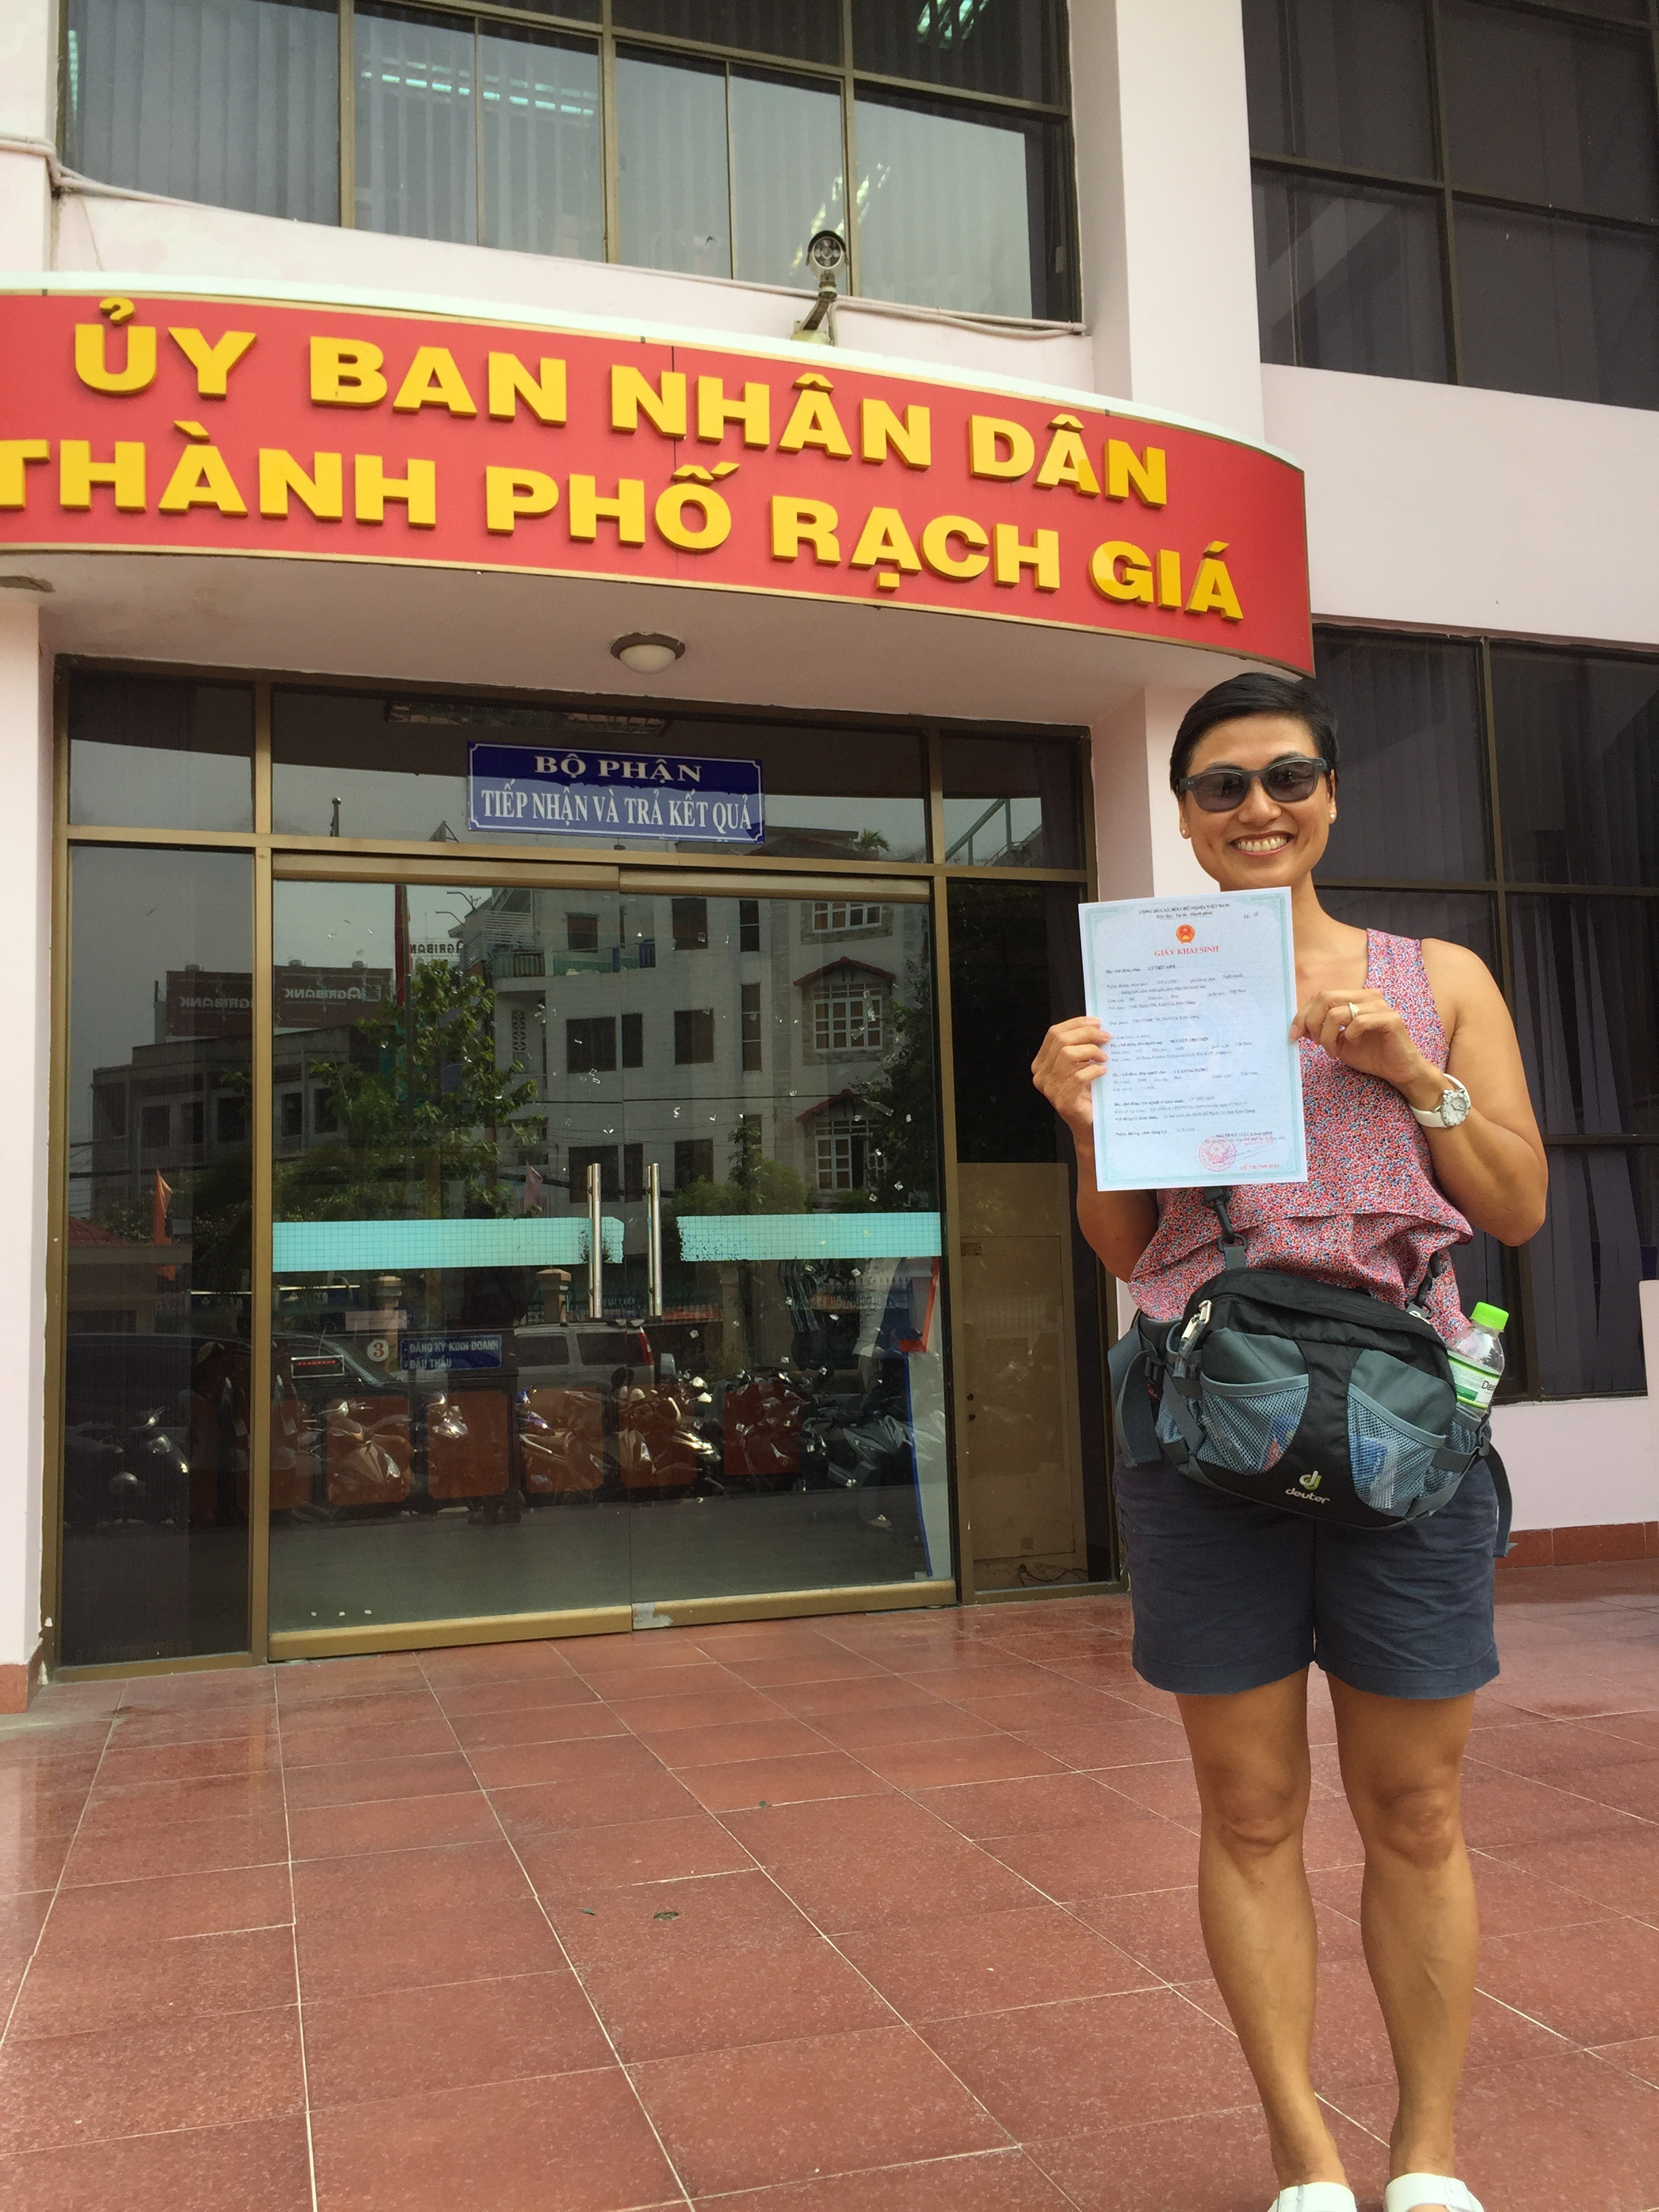 Me with my very official Vietnamese birth certificate :-)